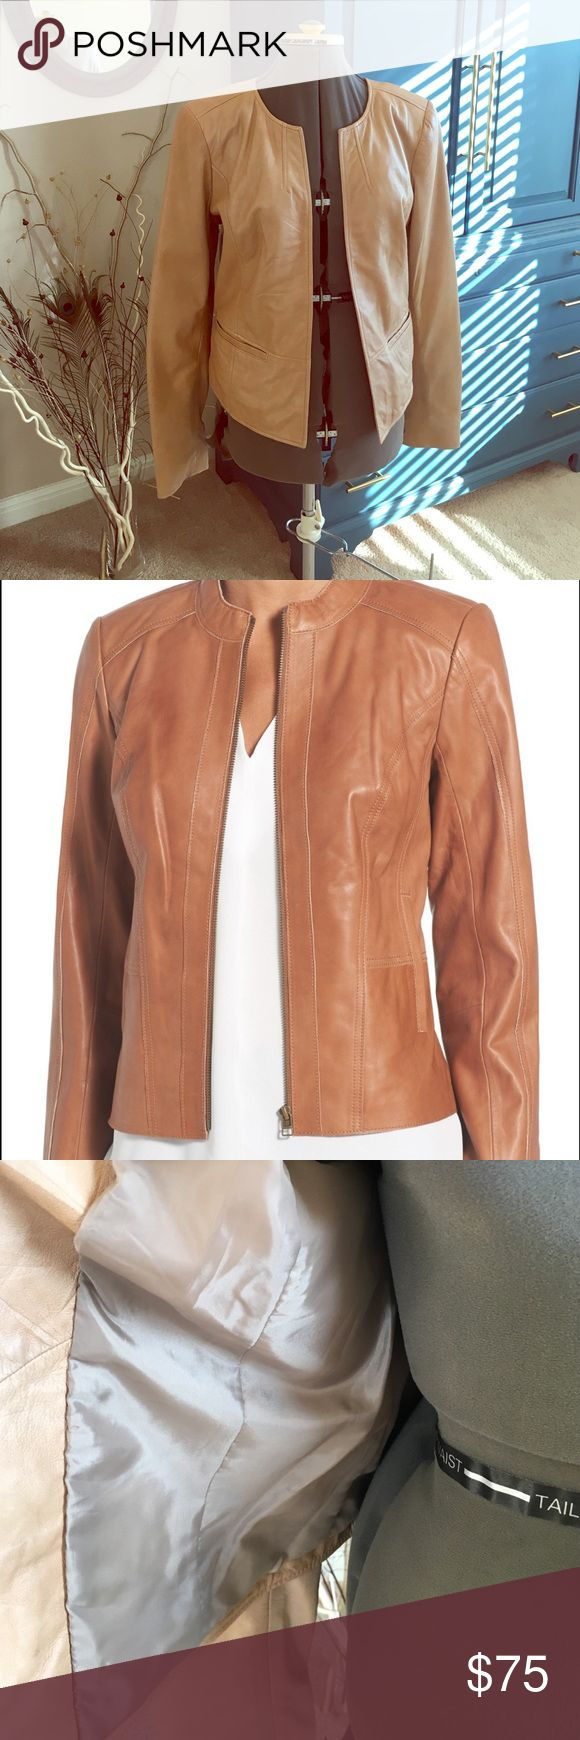 Halogen Camel Leather Jacket Never used. Two front pockets. No closures. Fully lined. There are some discolorations but it was that way at original purchase so may be normal. Light padding in shoulders. Second photo is a stock photo of similar at Nordstrom. Halogen Jackets & Coats